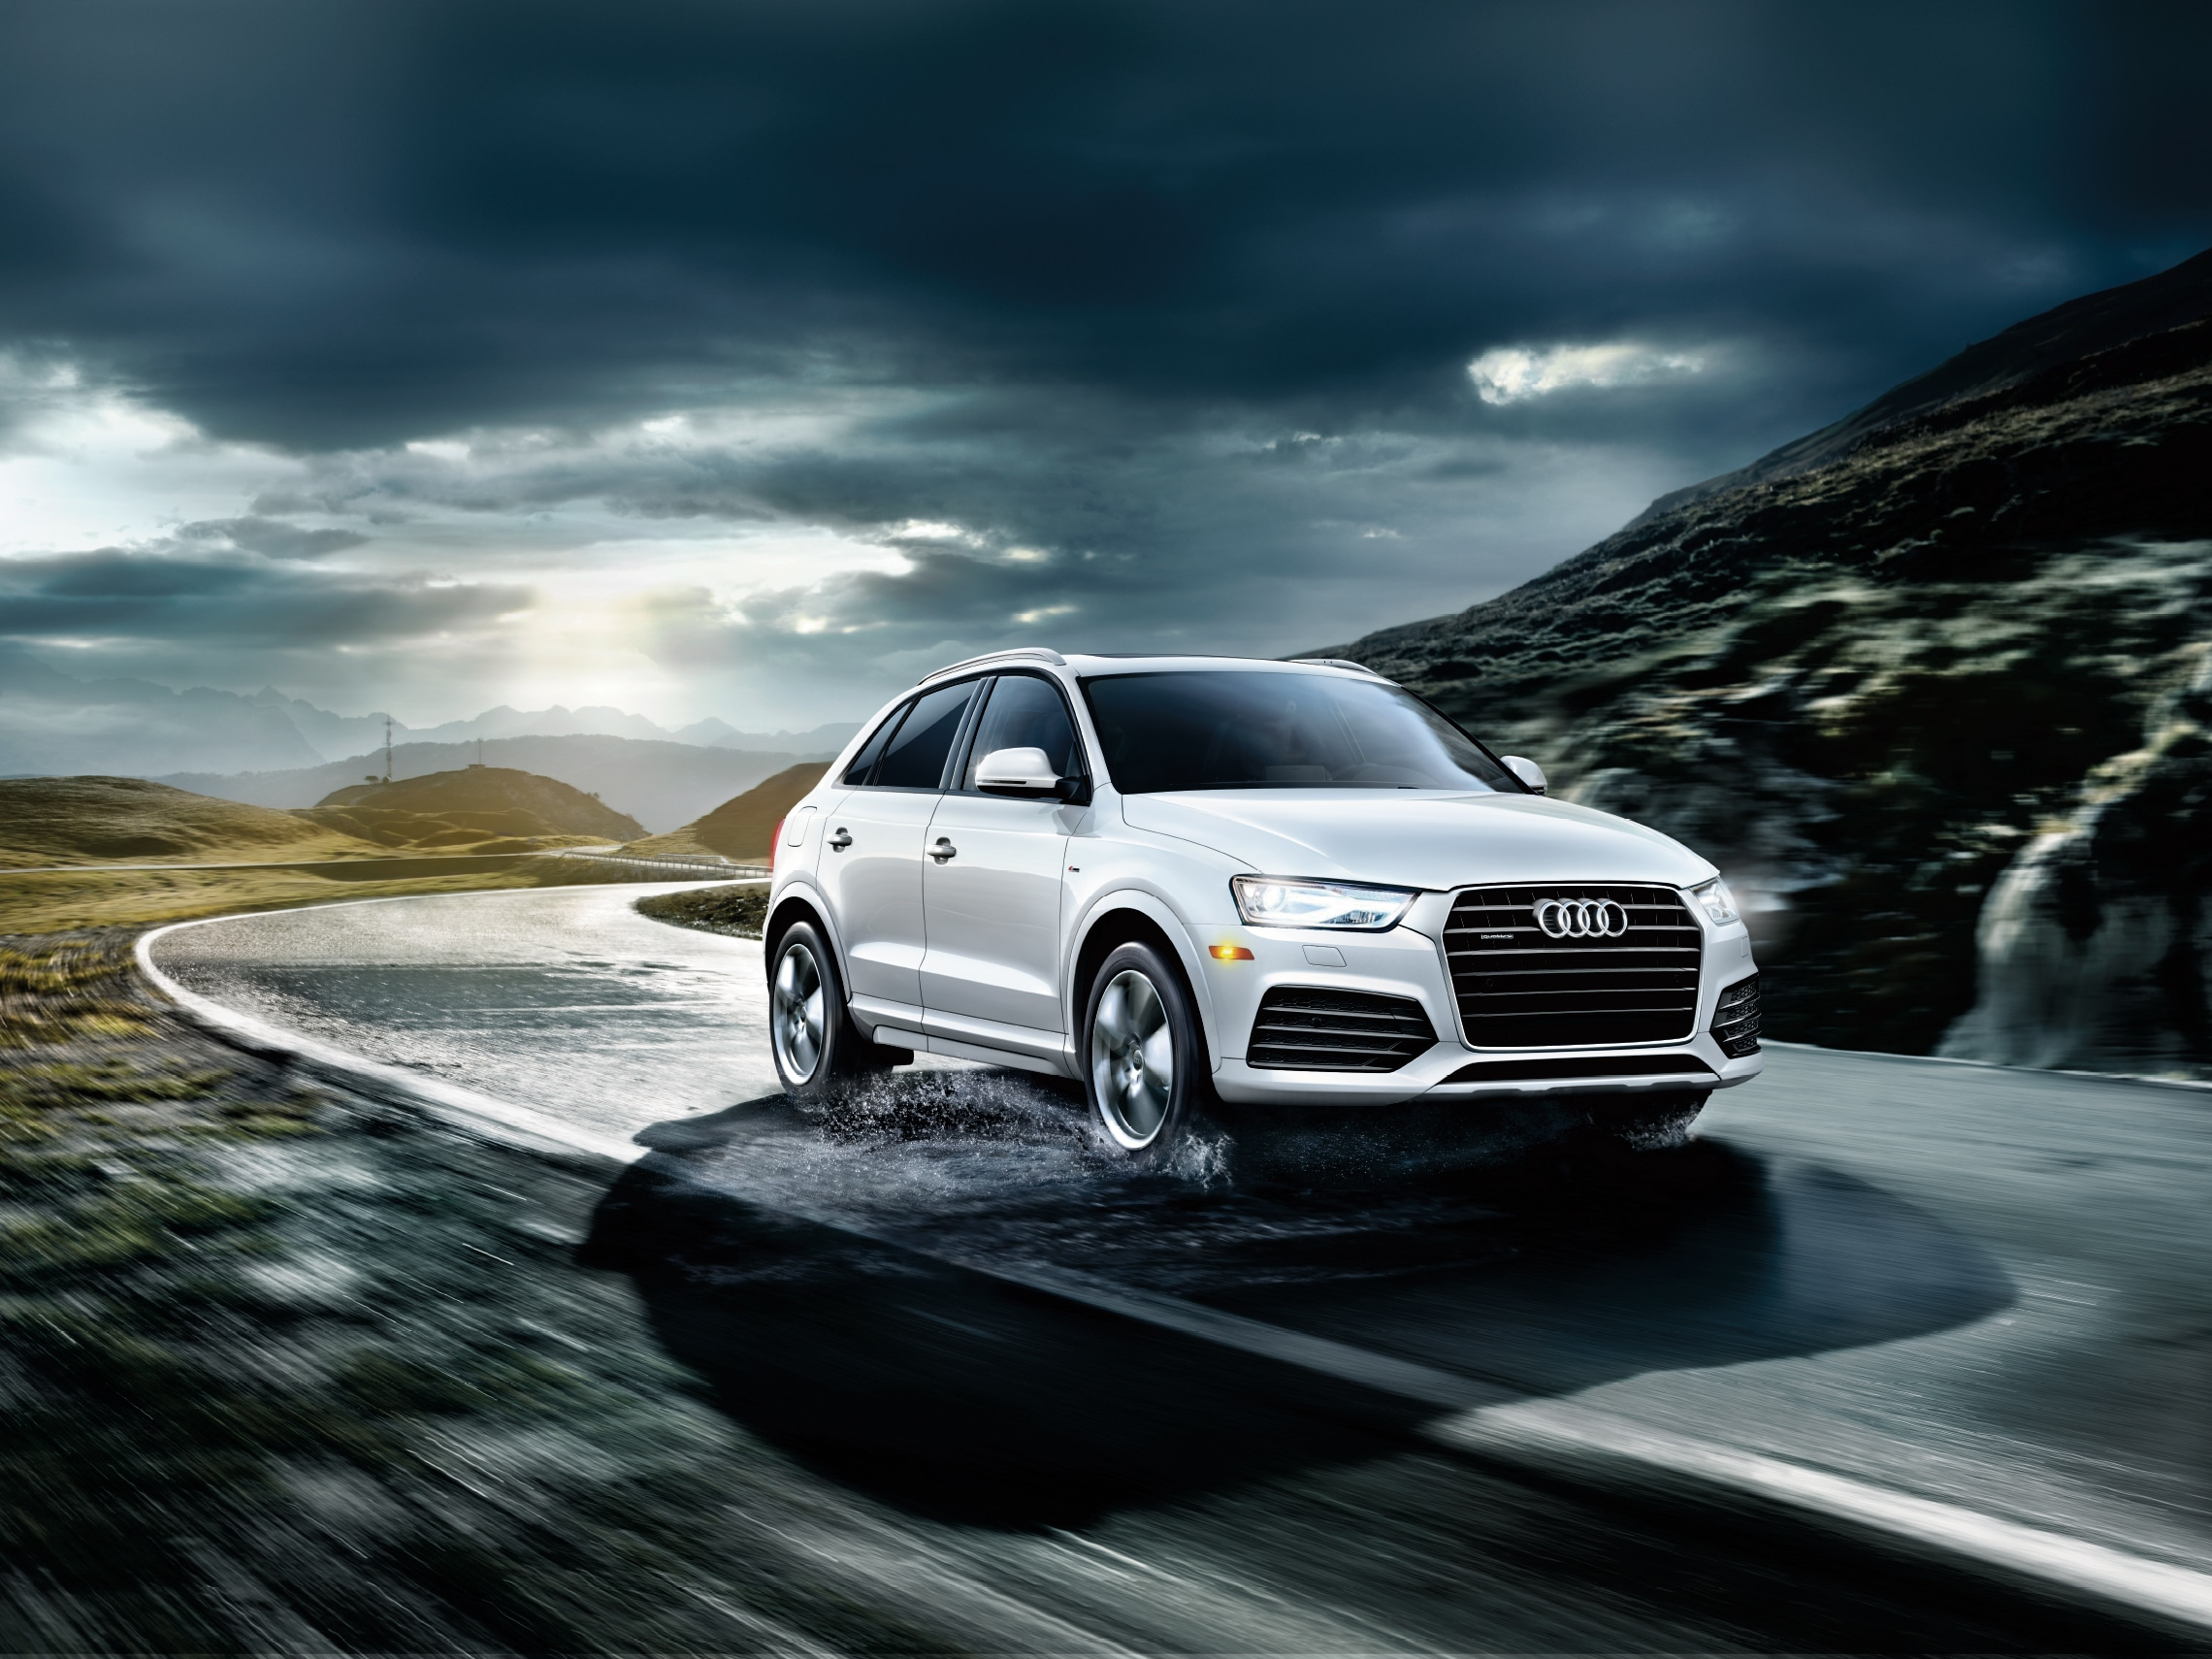 Audi Dealership Near Me >> 2018 Audi Q3 Review Audi Dealer Near Me